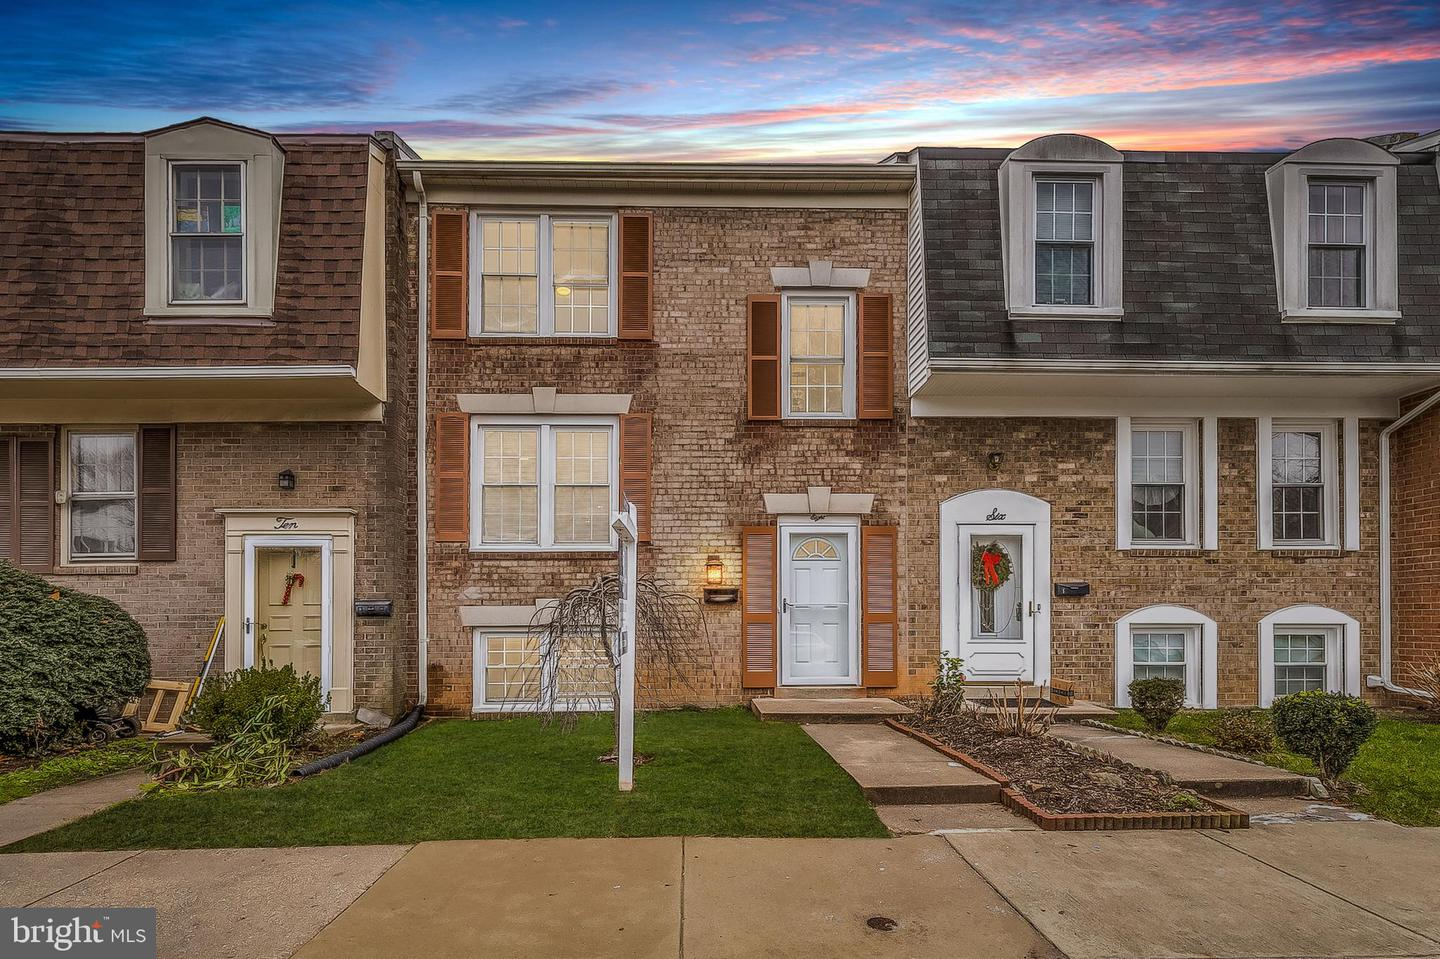 8 Blue Ribbon Court  #4-4 - Gaithersburg, Maryland 20878